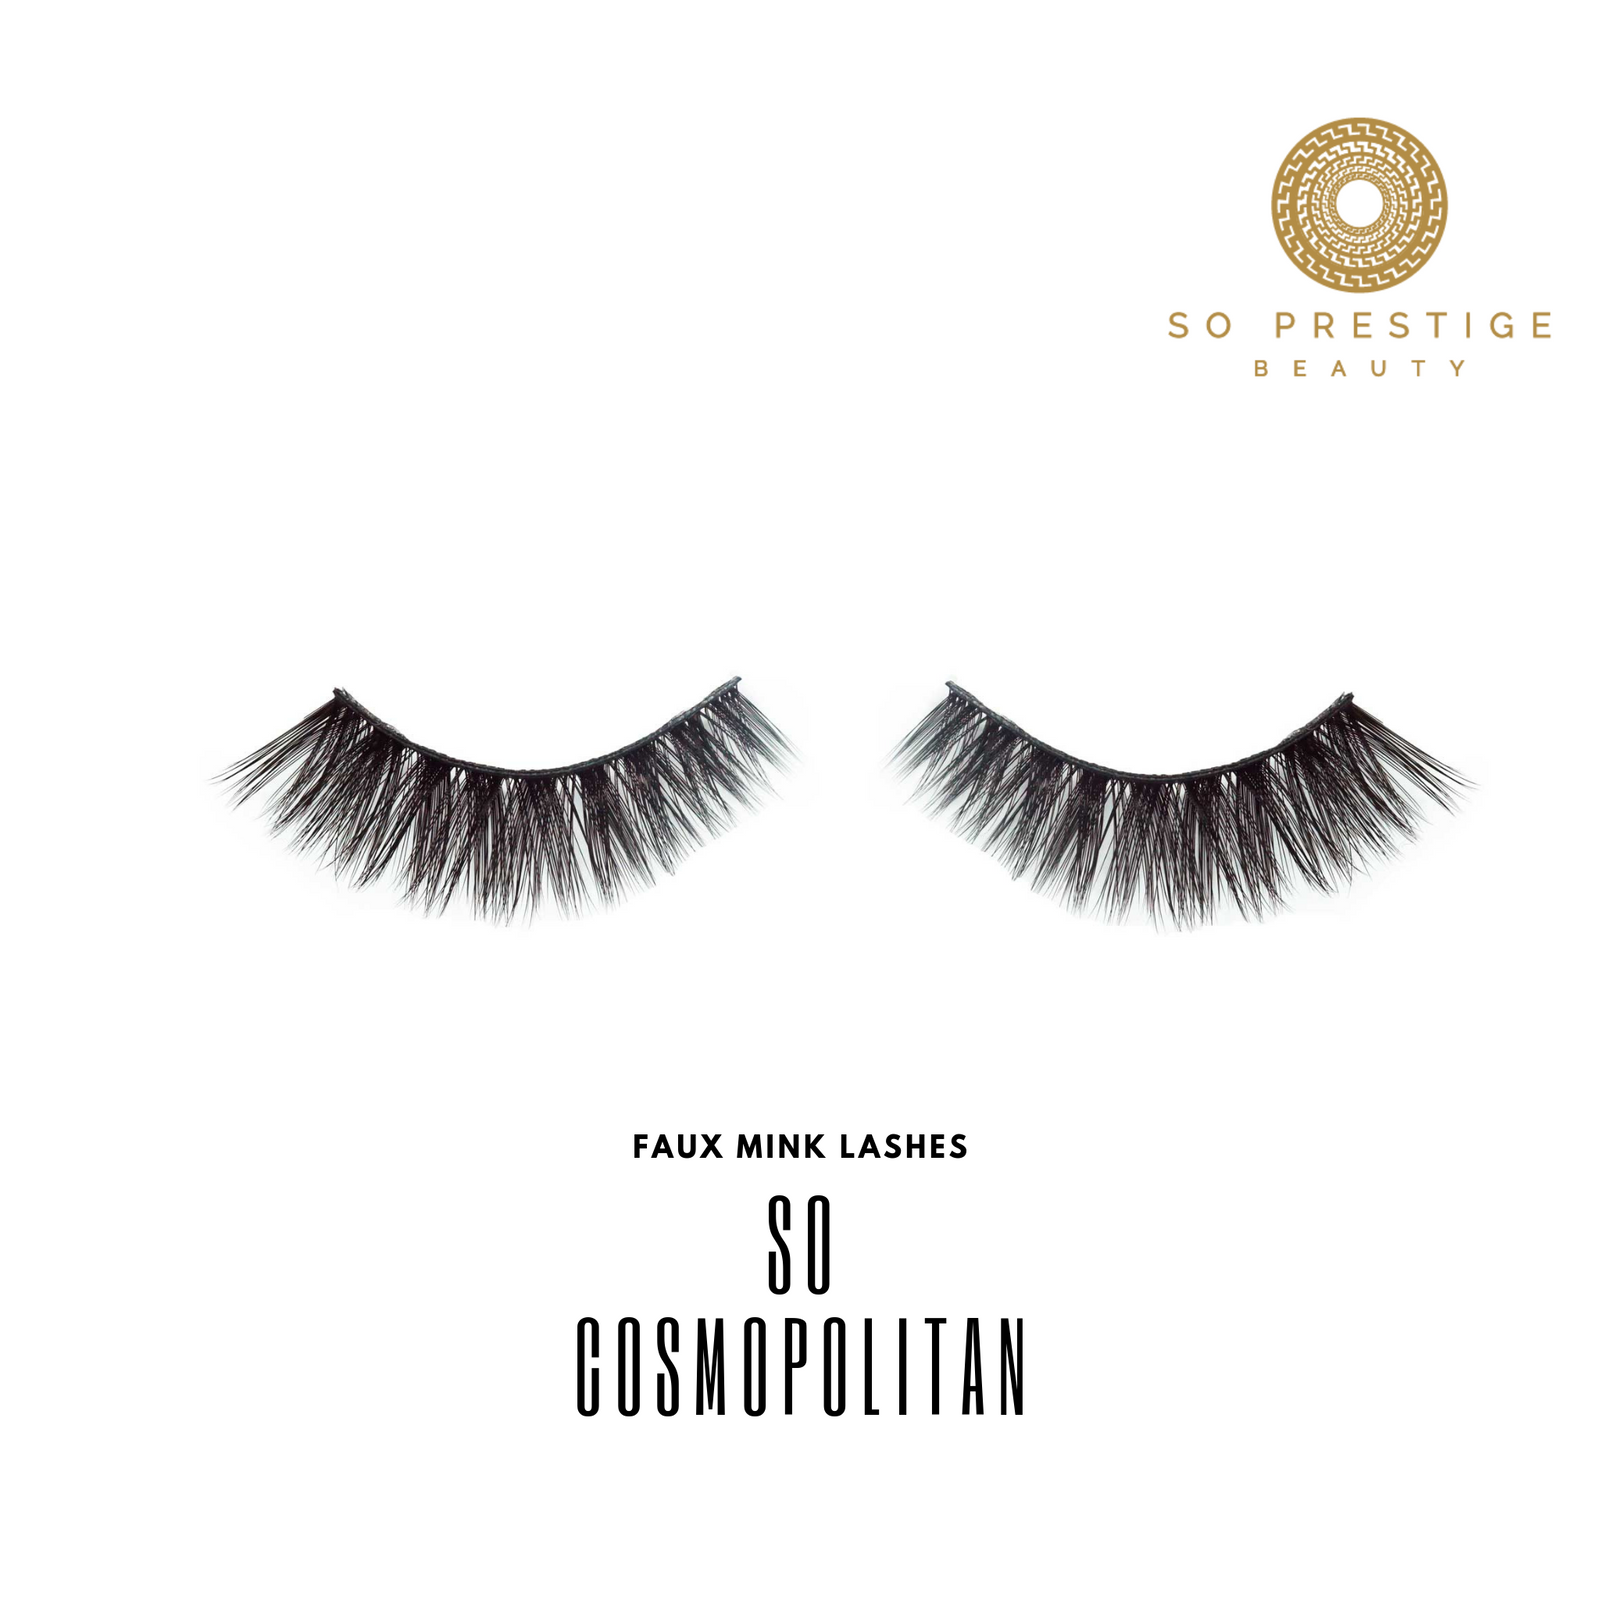 Faux Mink Eyelashes in the Style 'So Cosmopolitan ' by So Prestige Beauty